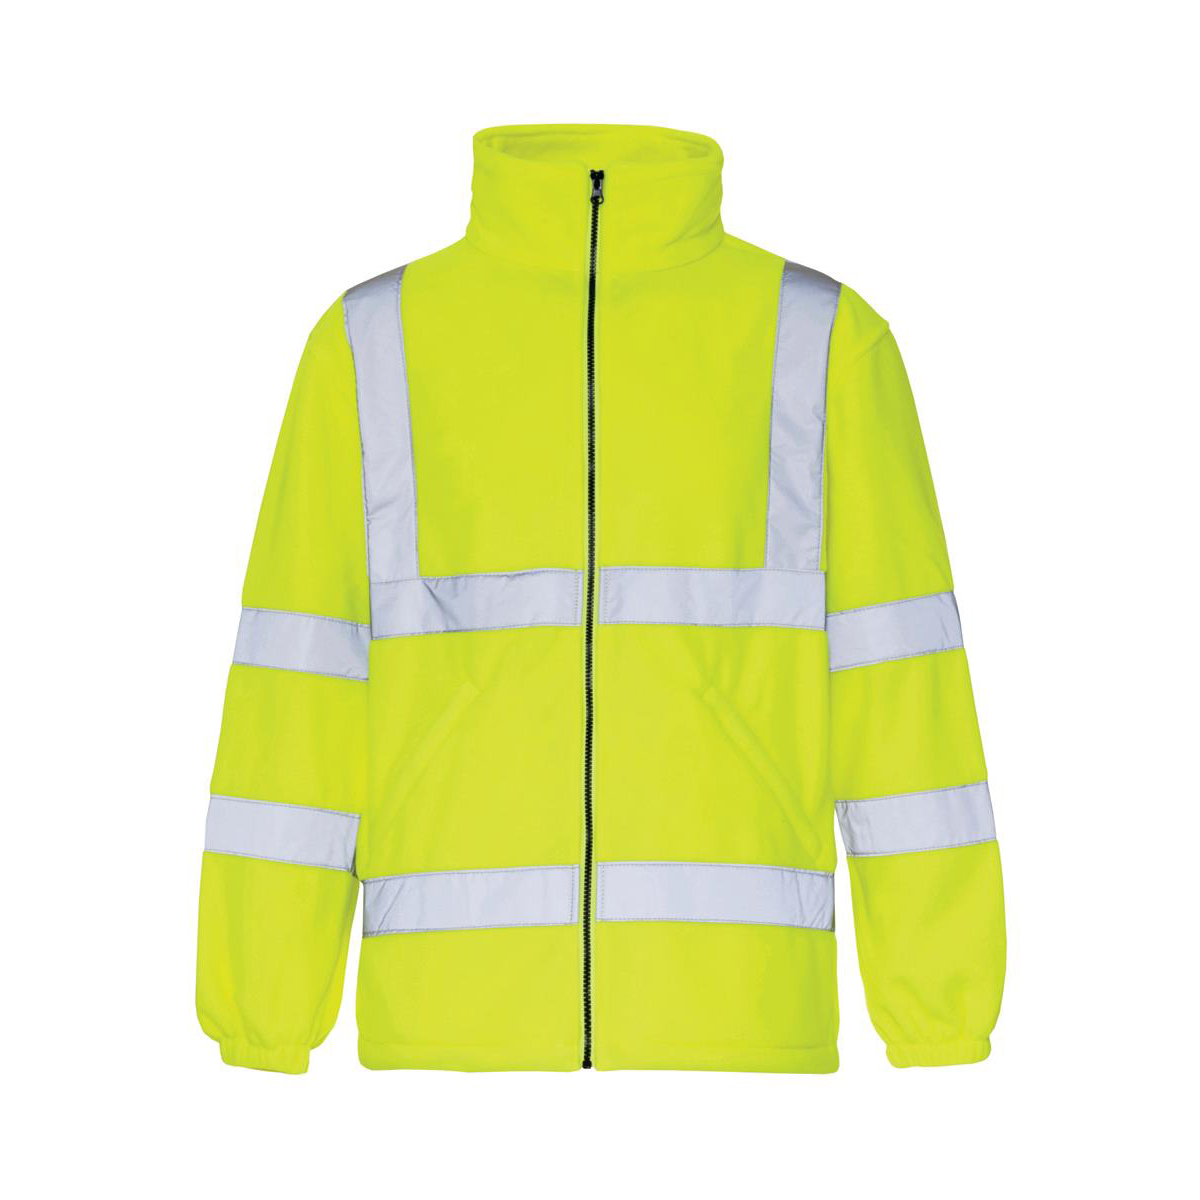 High-Vis Fleece Jacket Poly with Zip Fastening Large Yellow Ref CARFSYL Approx 2/3 Day Leadtime